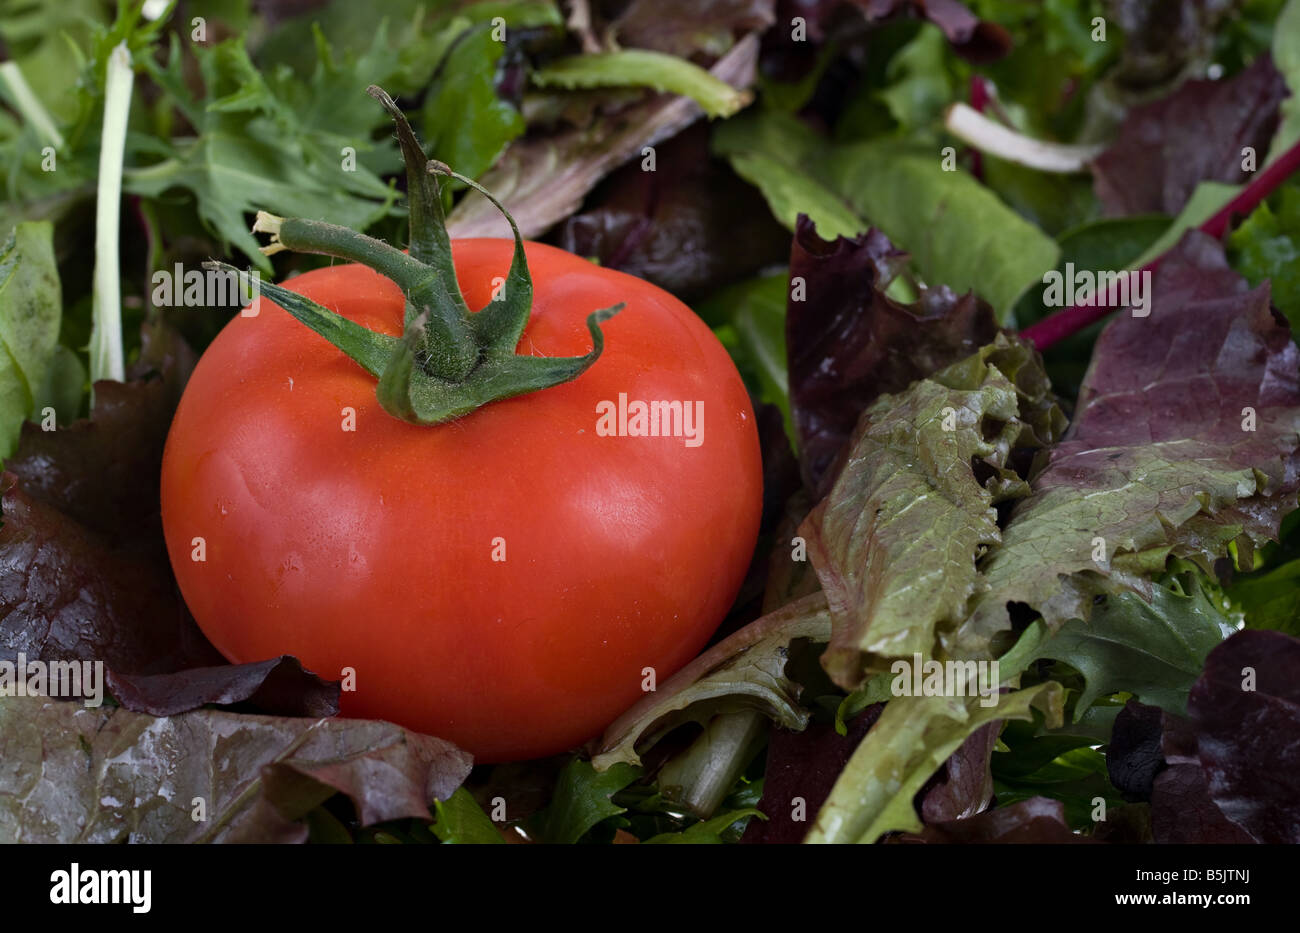 juicy fresh red tomato on a lettuce background - Stock Image